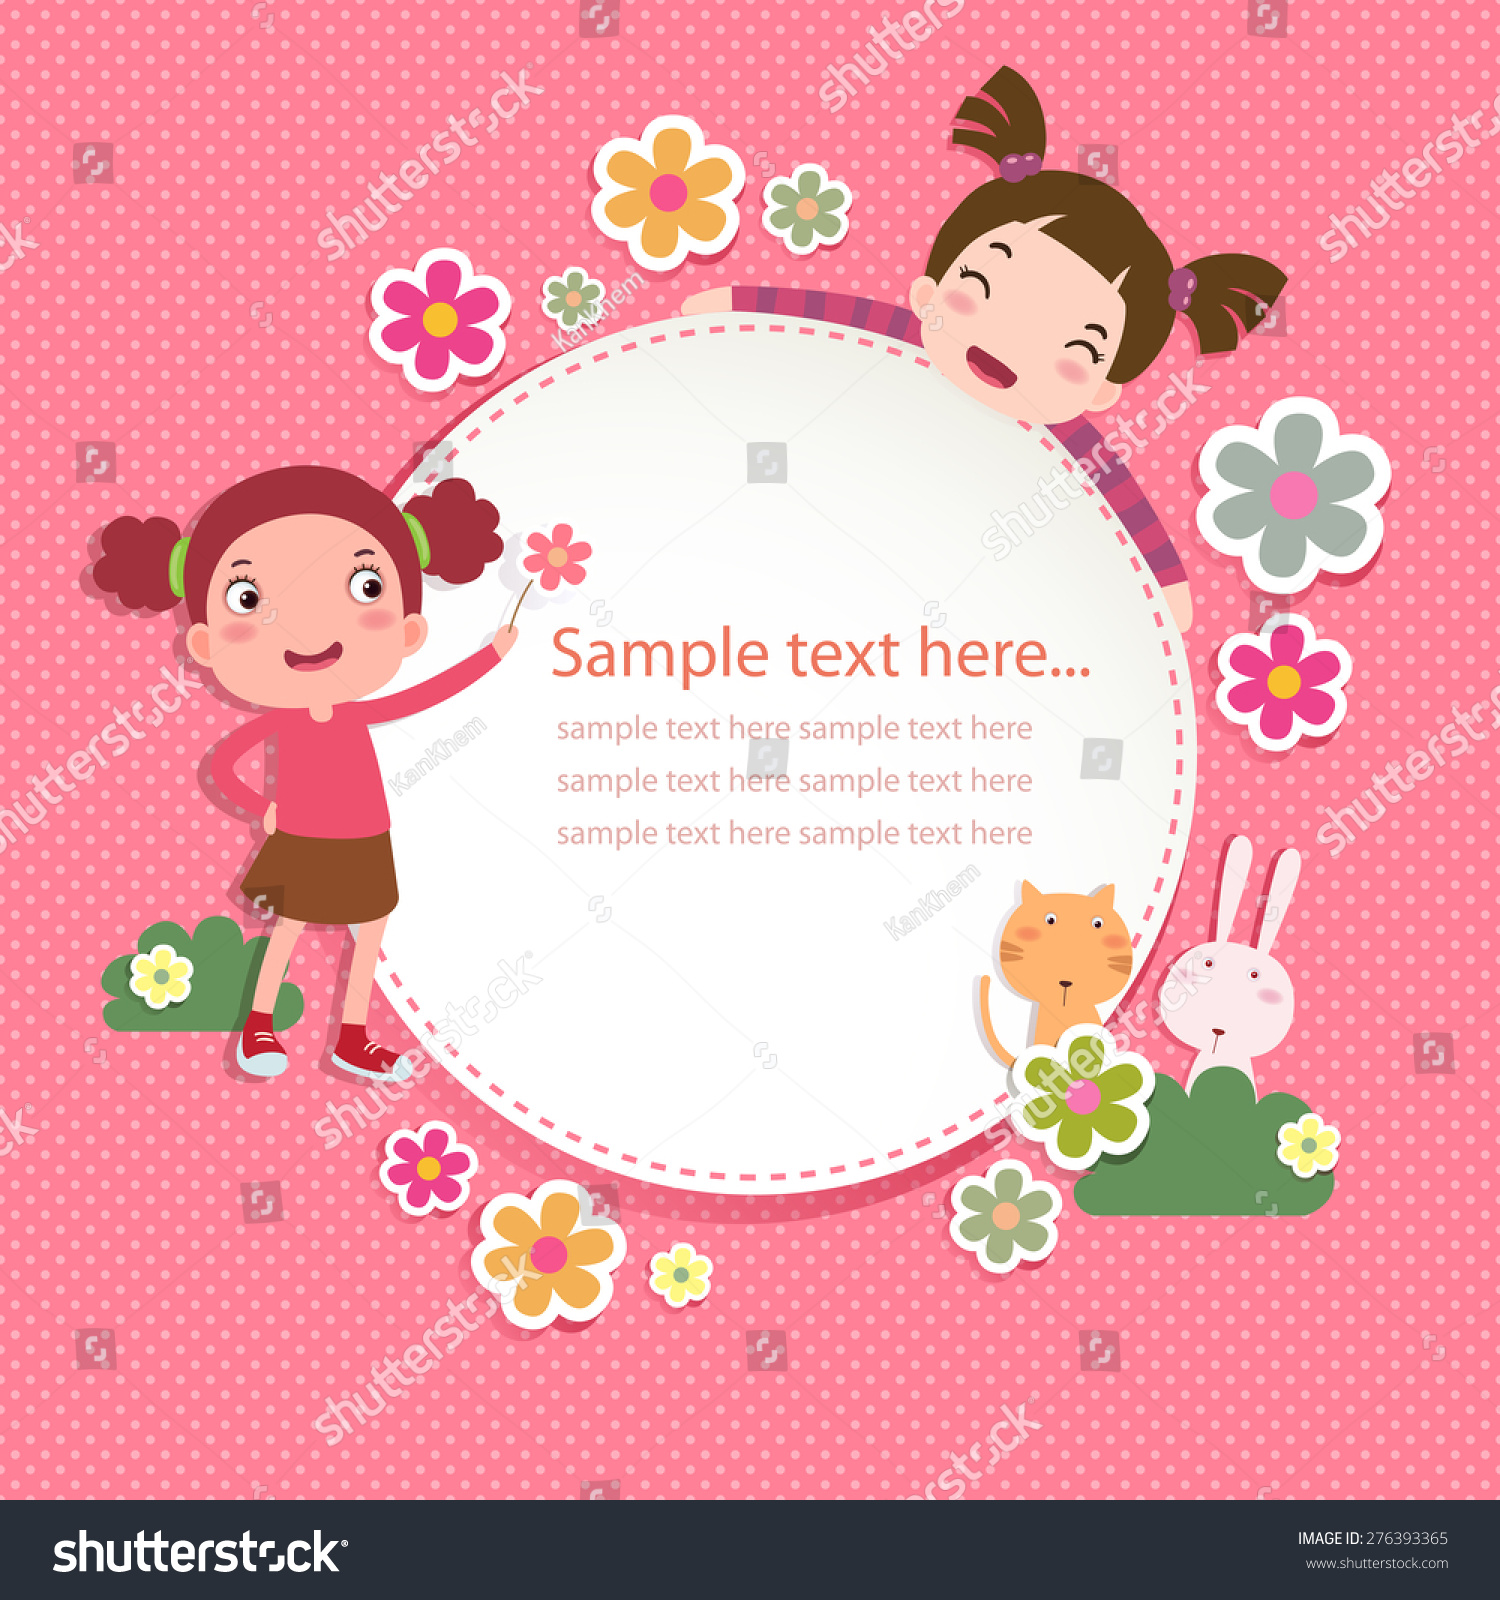 Greeting Card Templates With Cute Girls